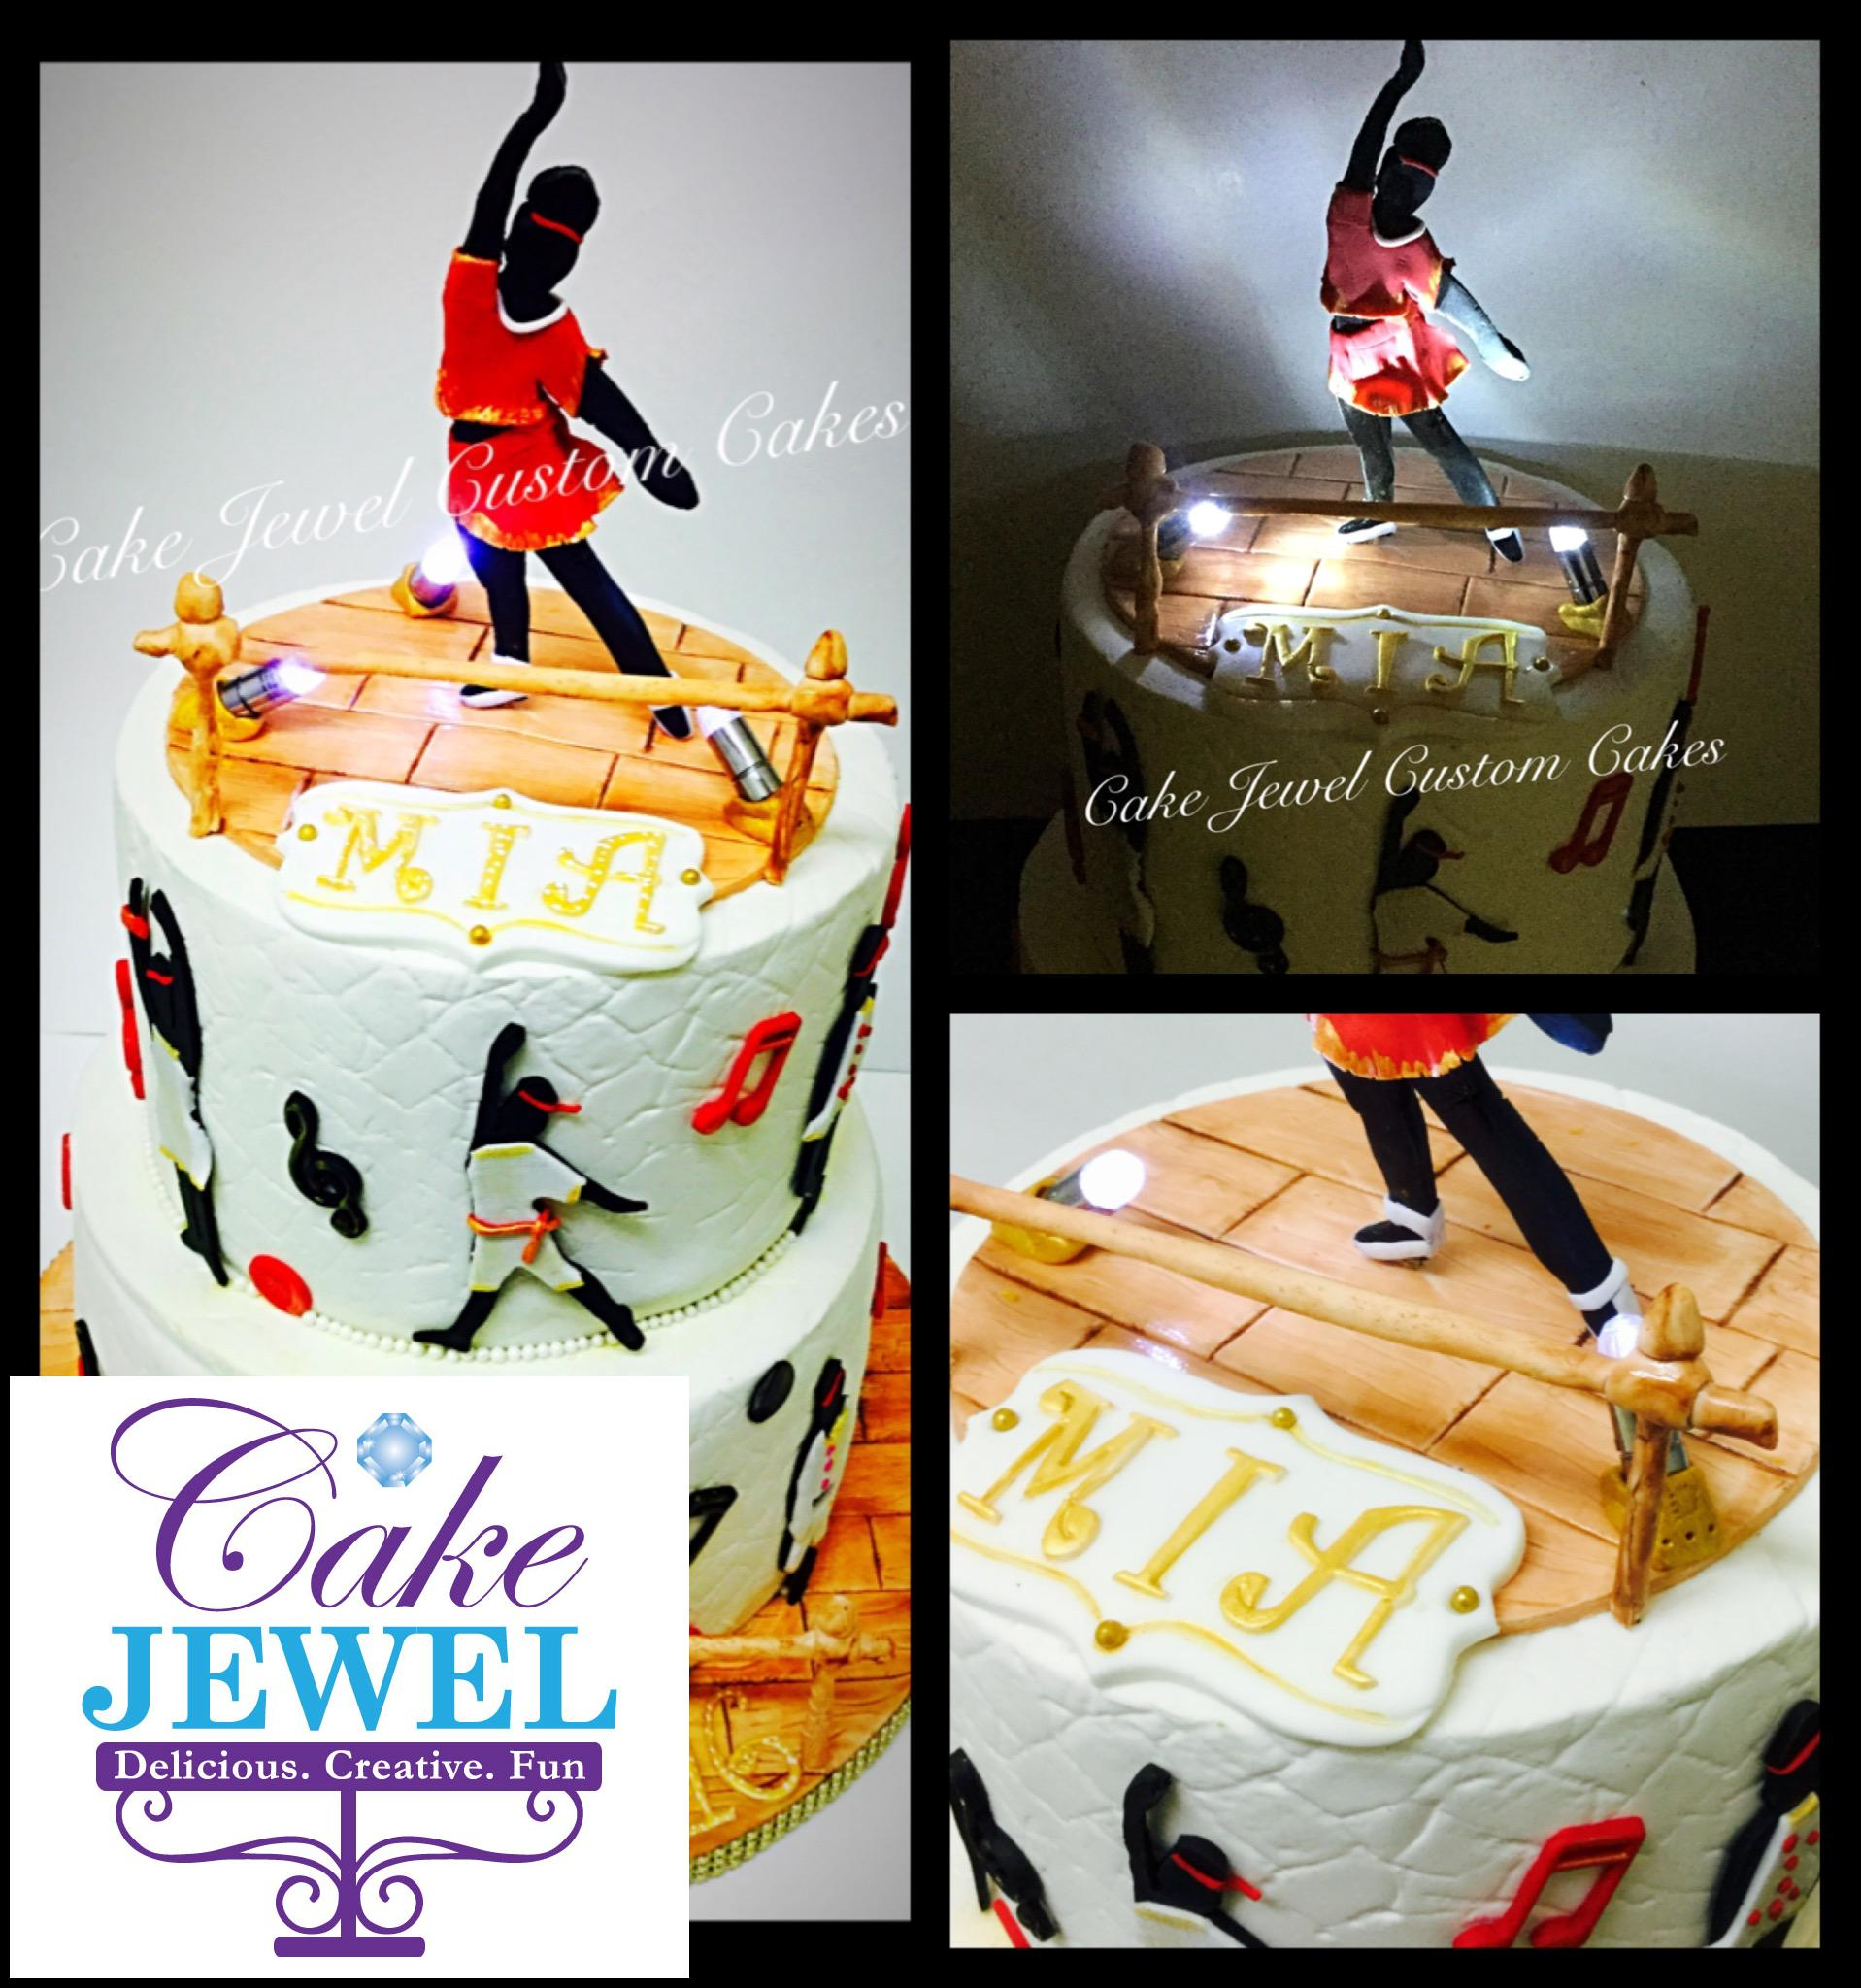 Dancer's Stage cake